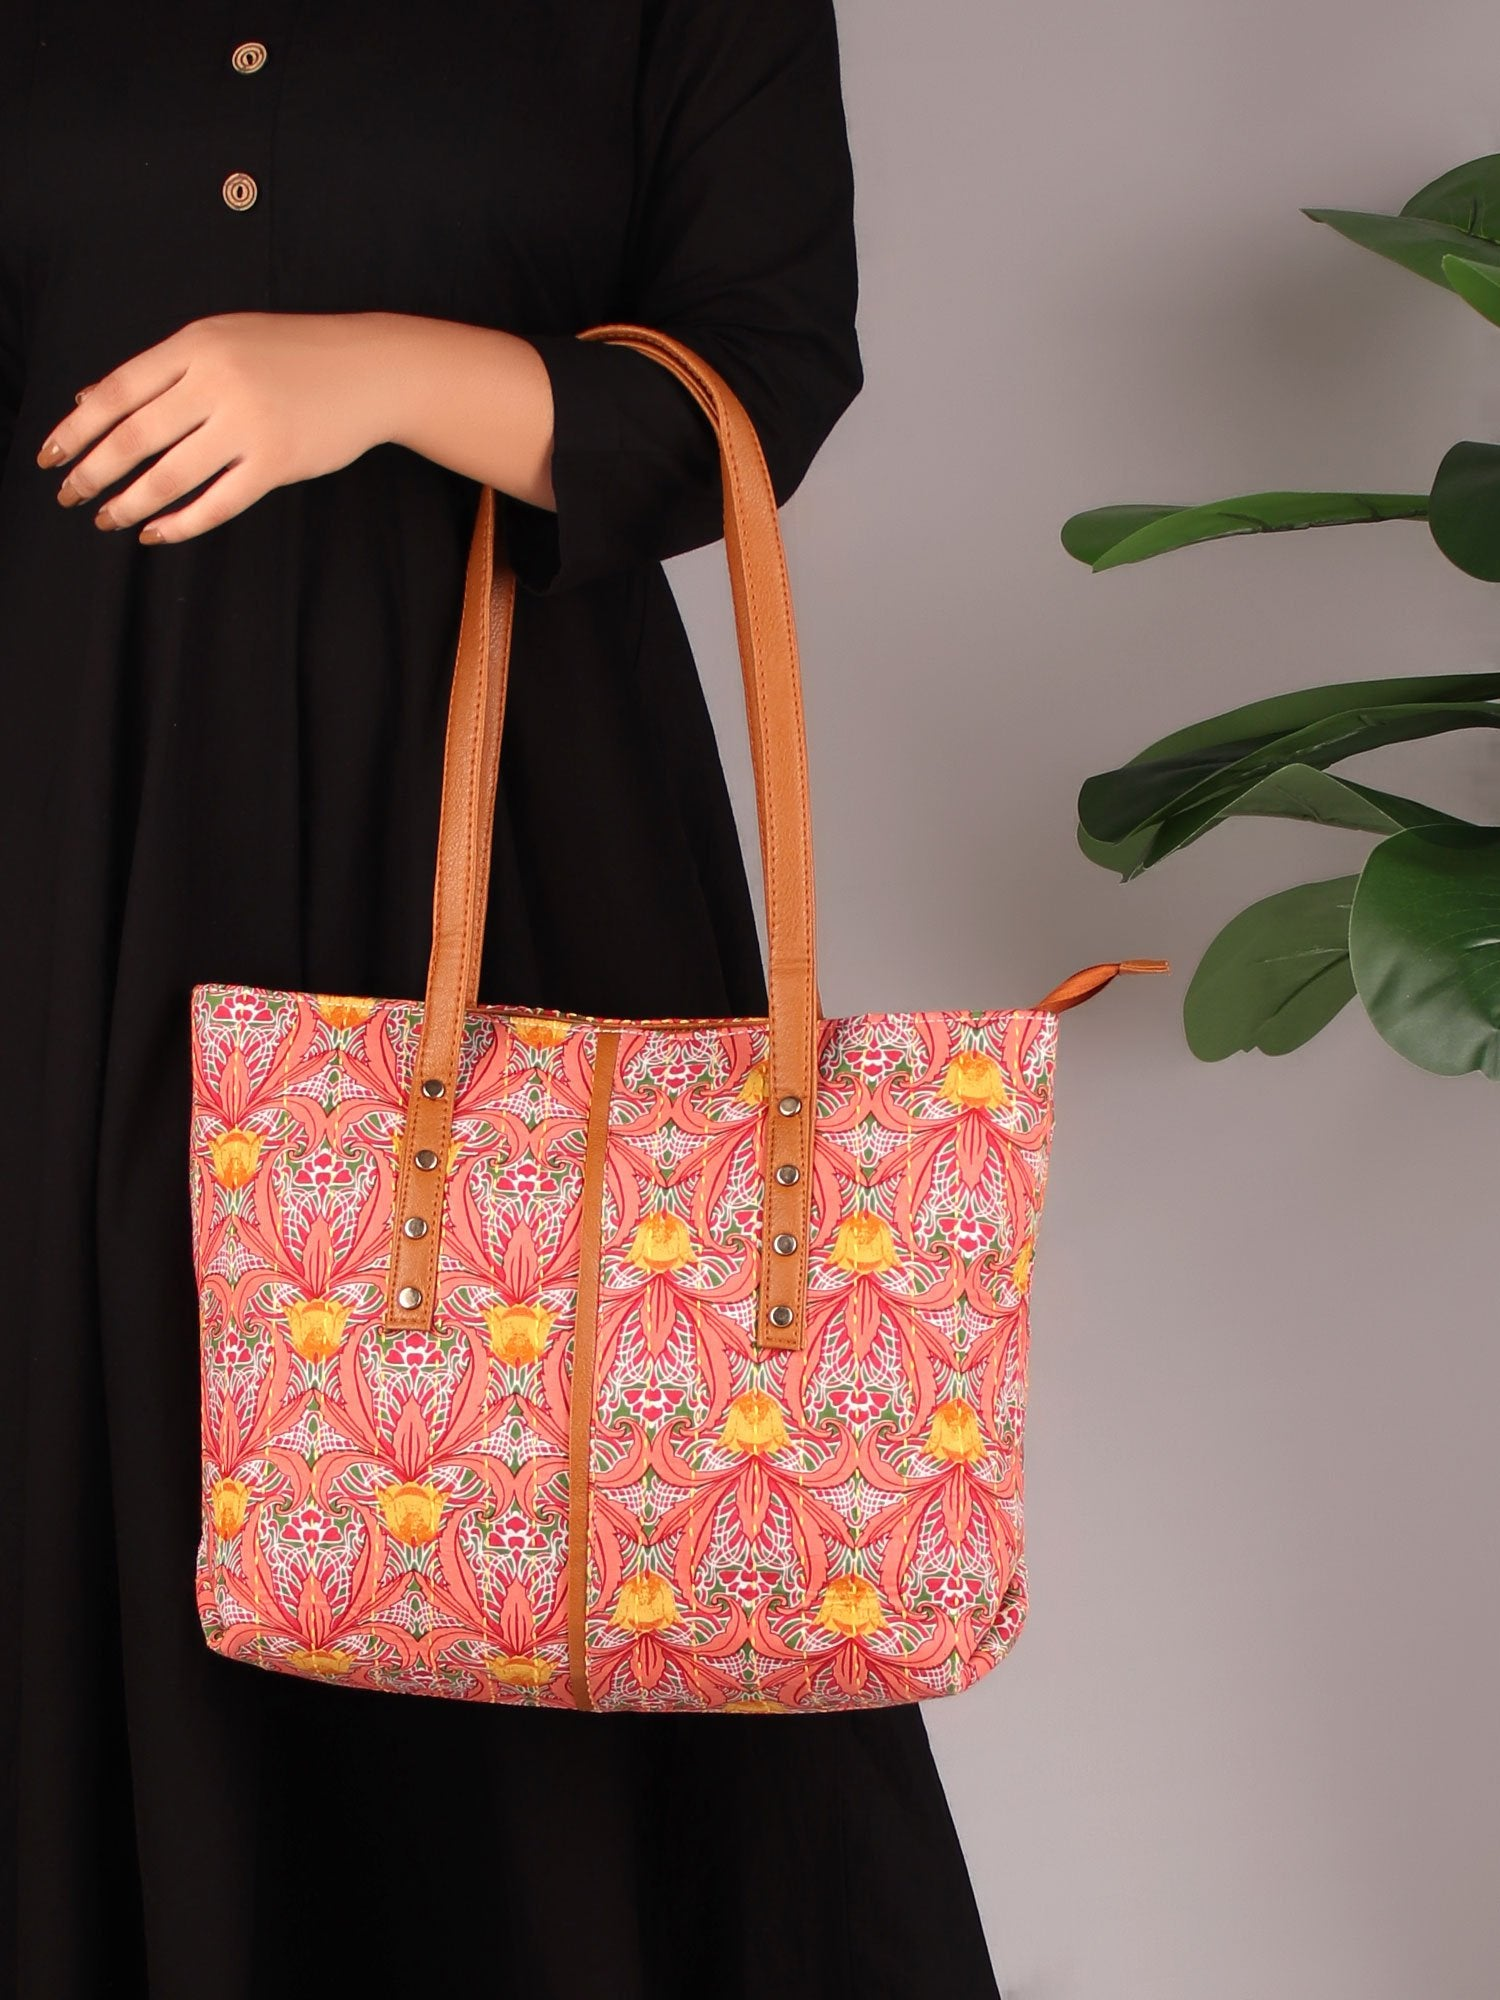 ARTISTIC TURN TOTE BAG